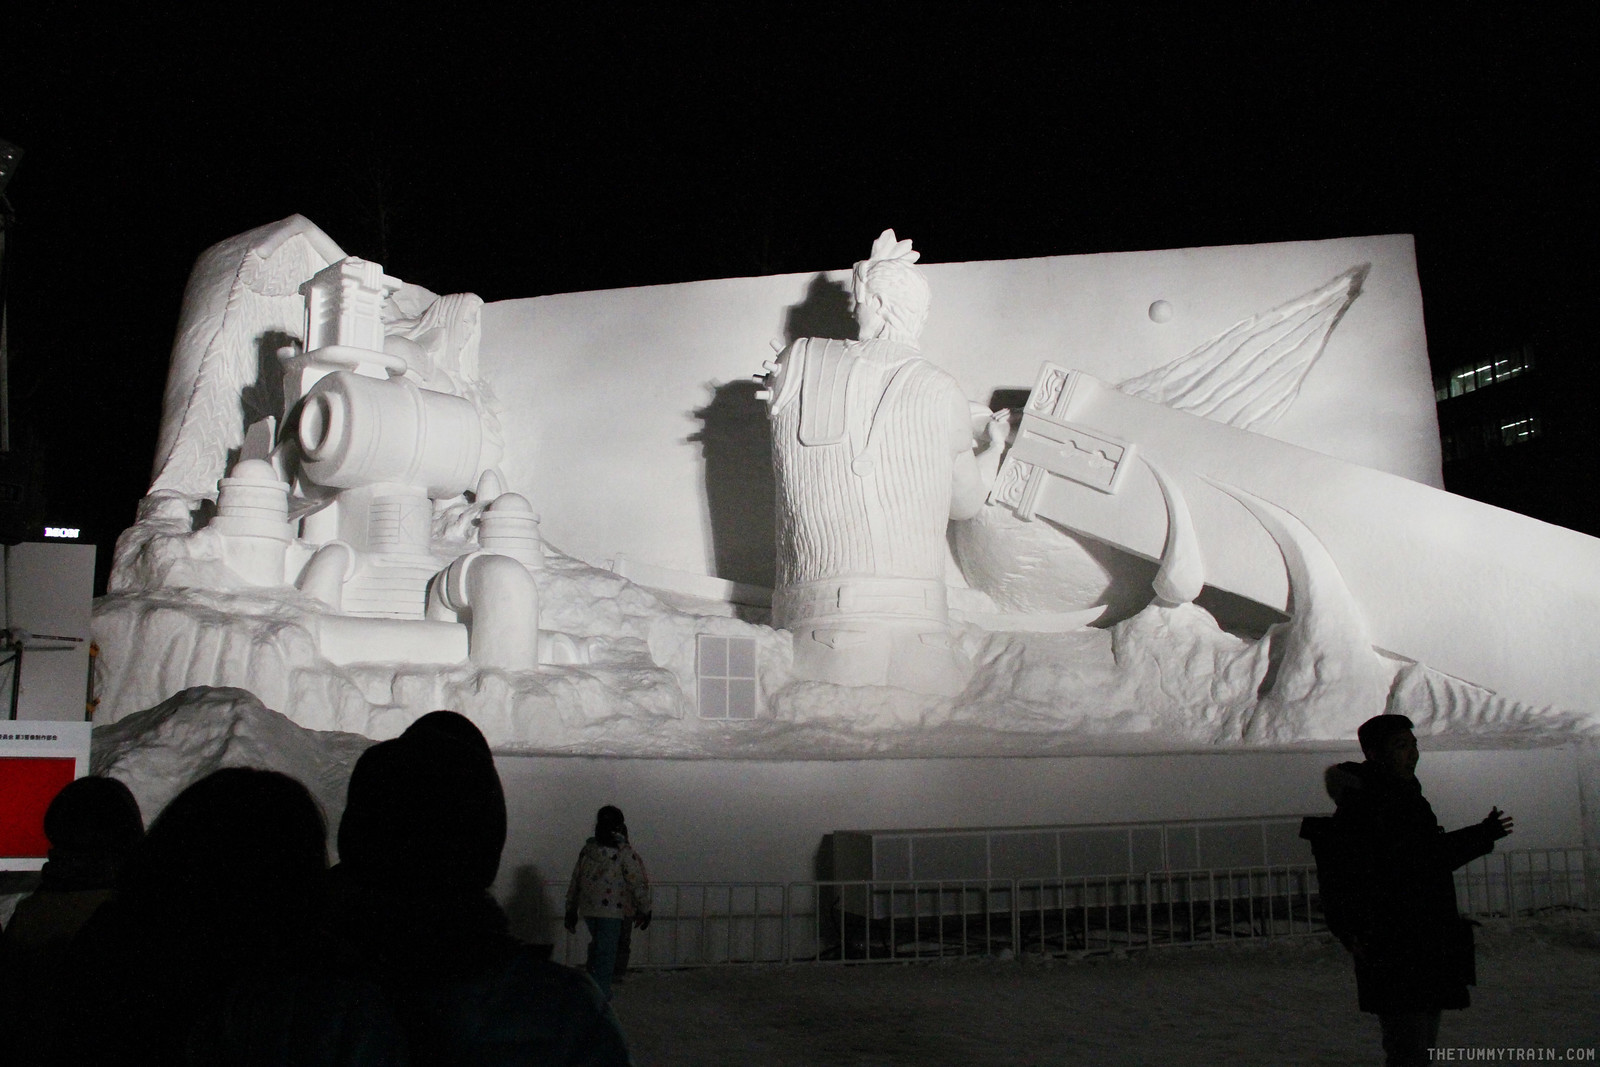 32074747114 1b4c880ef1 h - Sapporo Snow And Smile: 8 Unforgettable Winter Experiences in Sapporo City